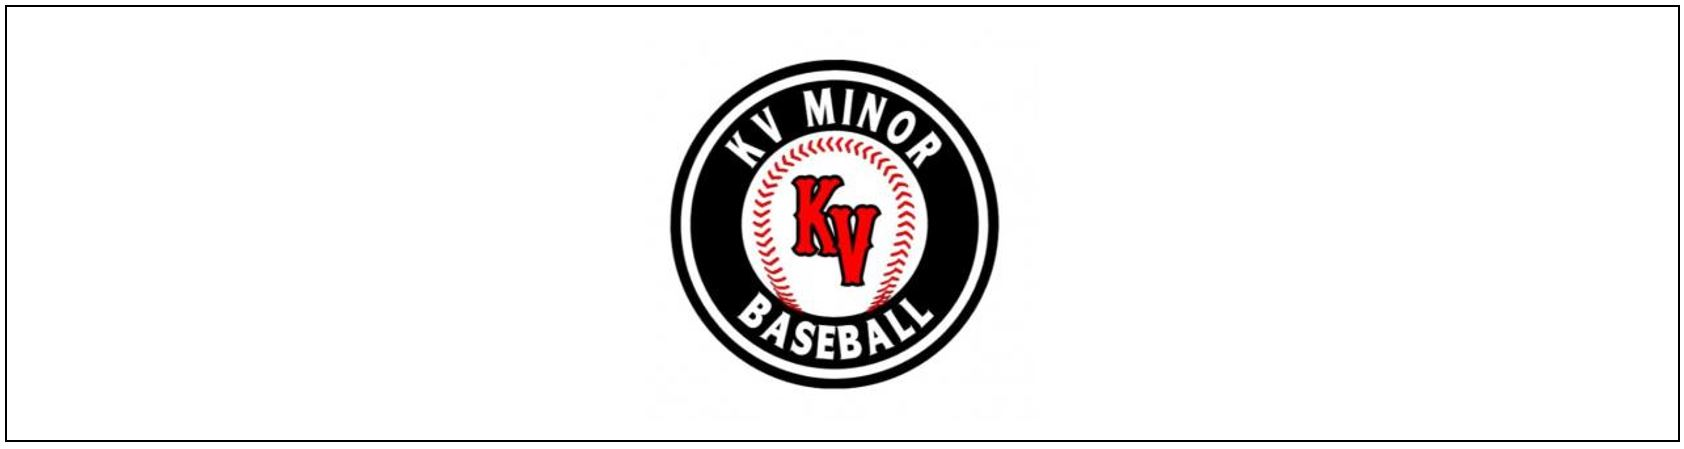 KV Minor Ball Association